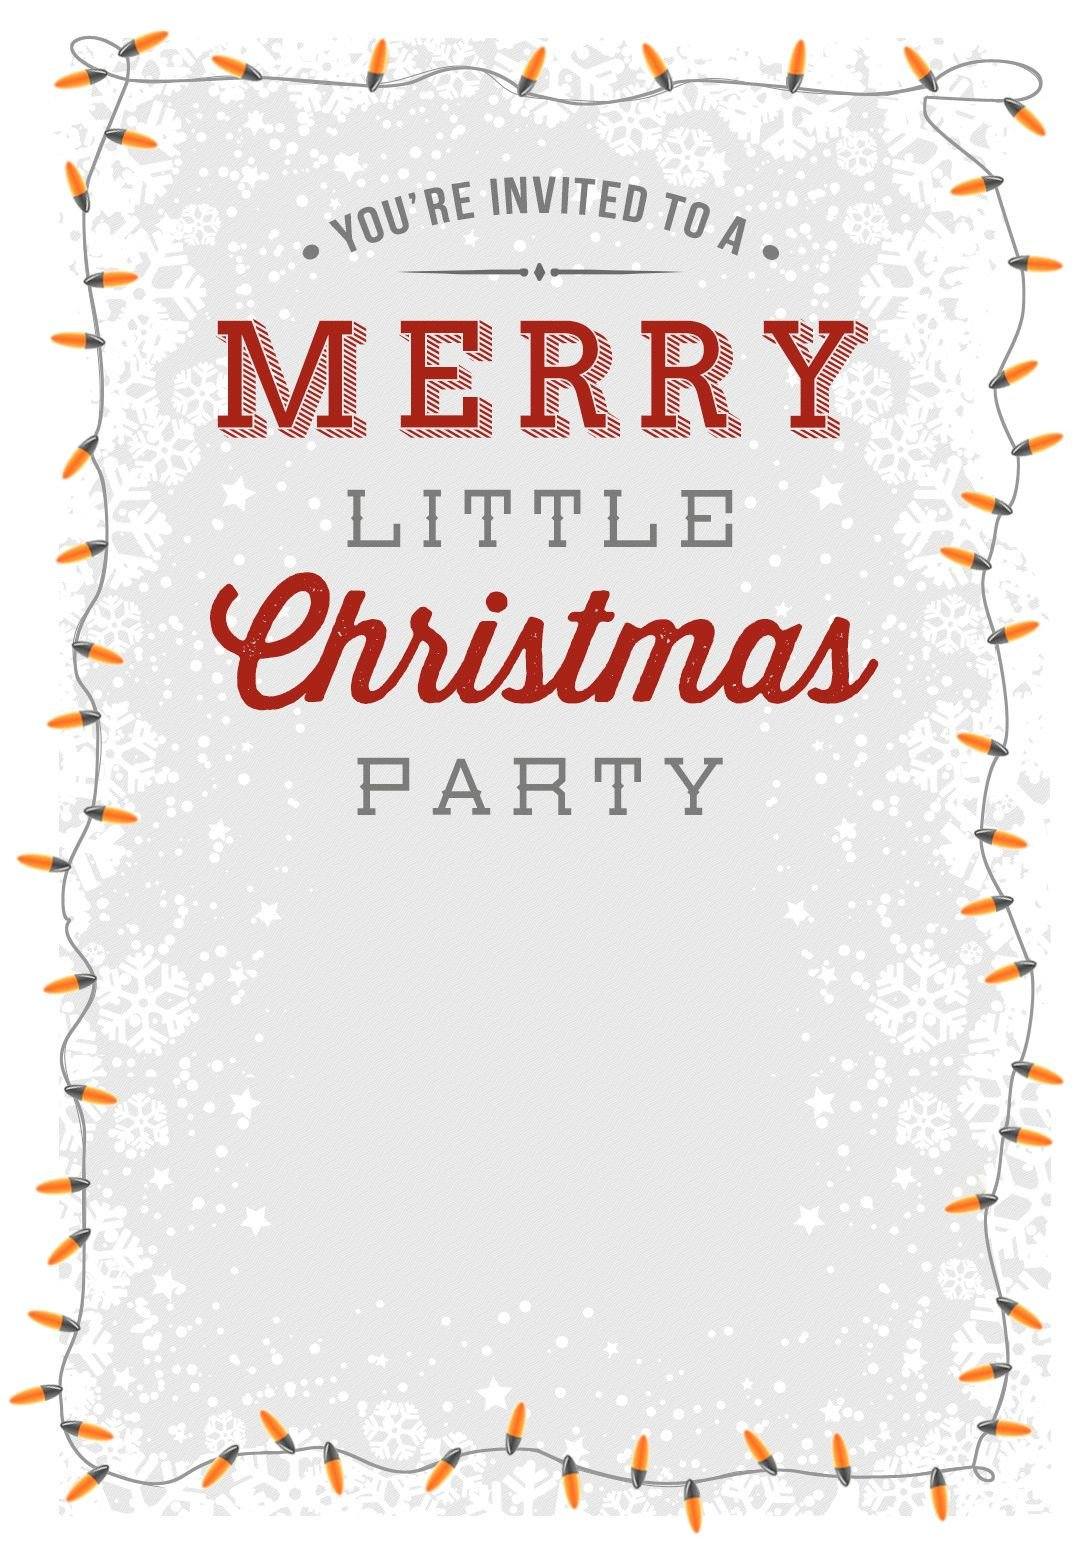 Free Printable Invitation Templates A Merry Little Party Free Printable Christmas Invitation